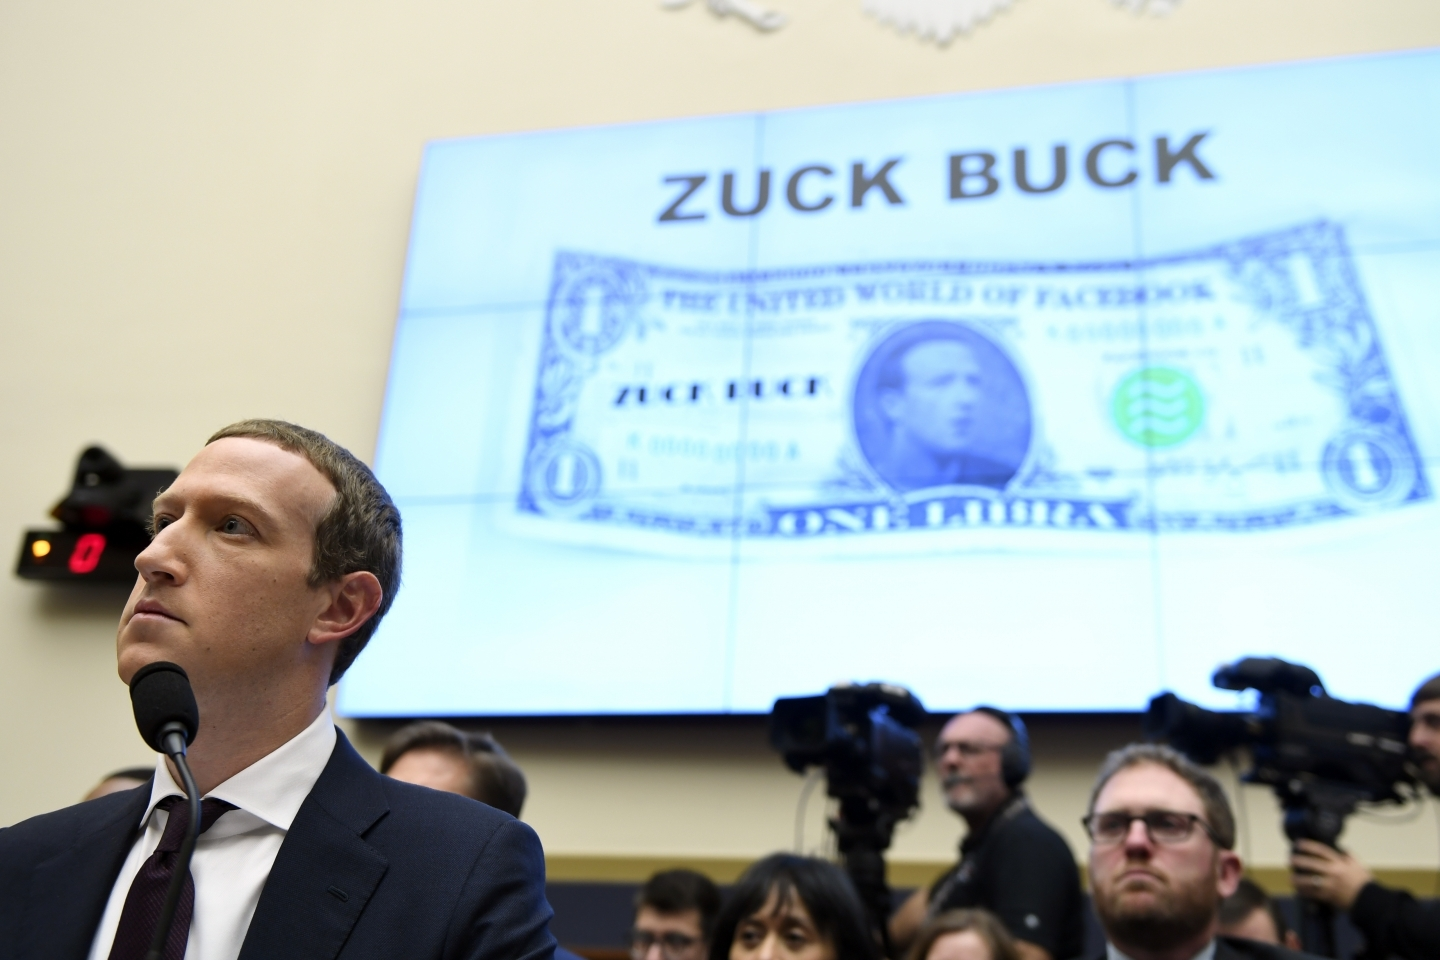 Facebook Chief Executive Officer Mark Zuckerberg testifies before the House Financial Services Committee on Capitol Hill in Washington, on October 23, 2019, to discuss his plans for the new cryptocurrency Libra. (AP Photo/Susan Walsh)